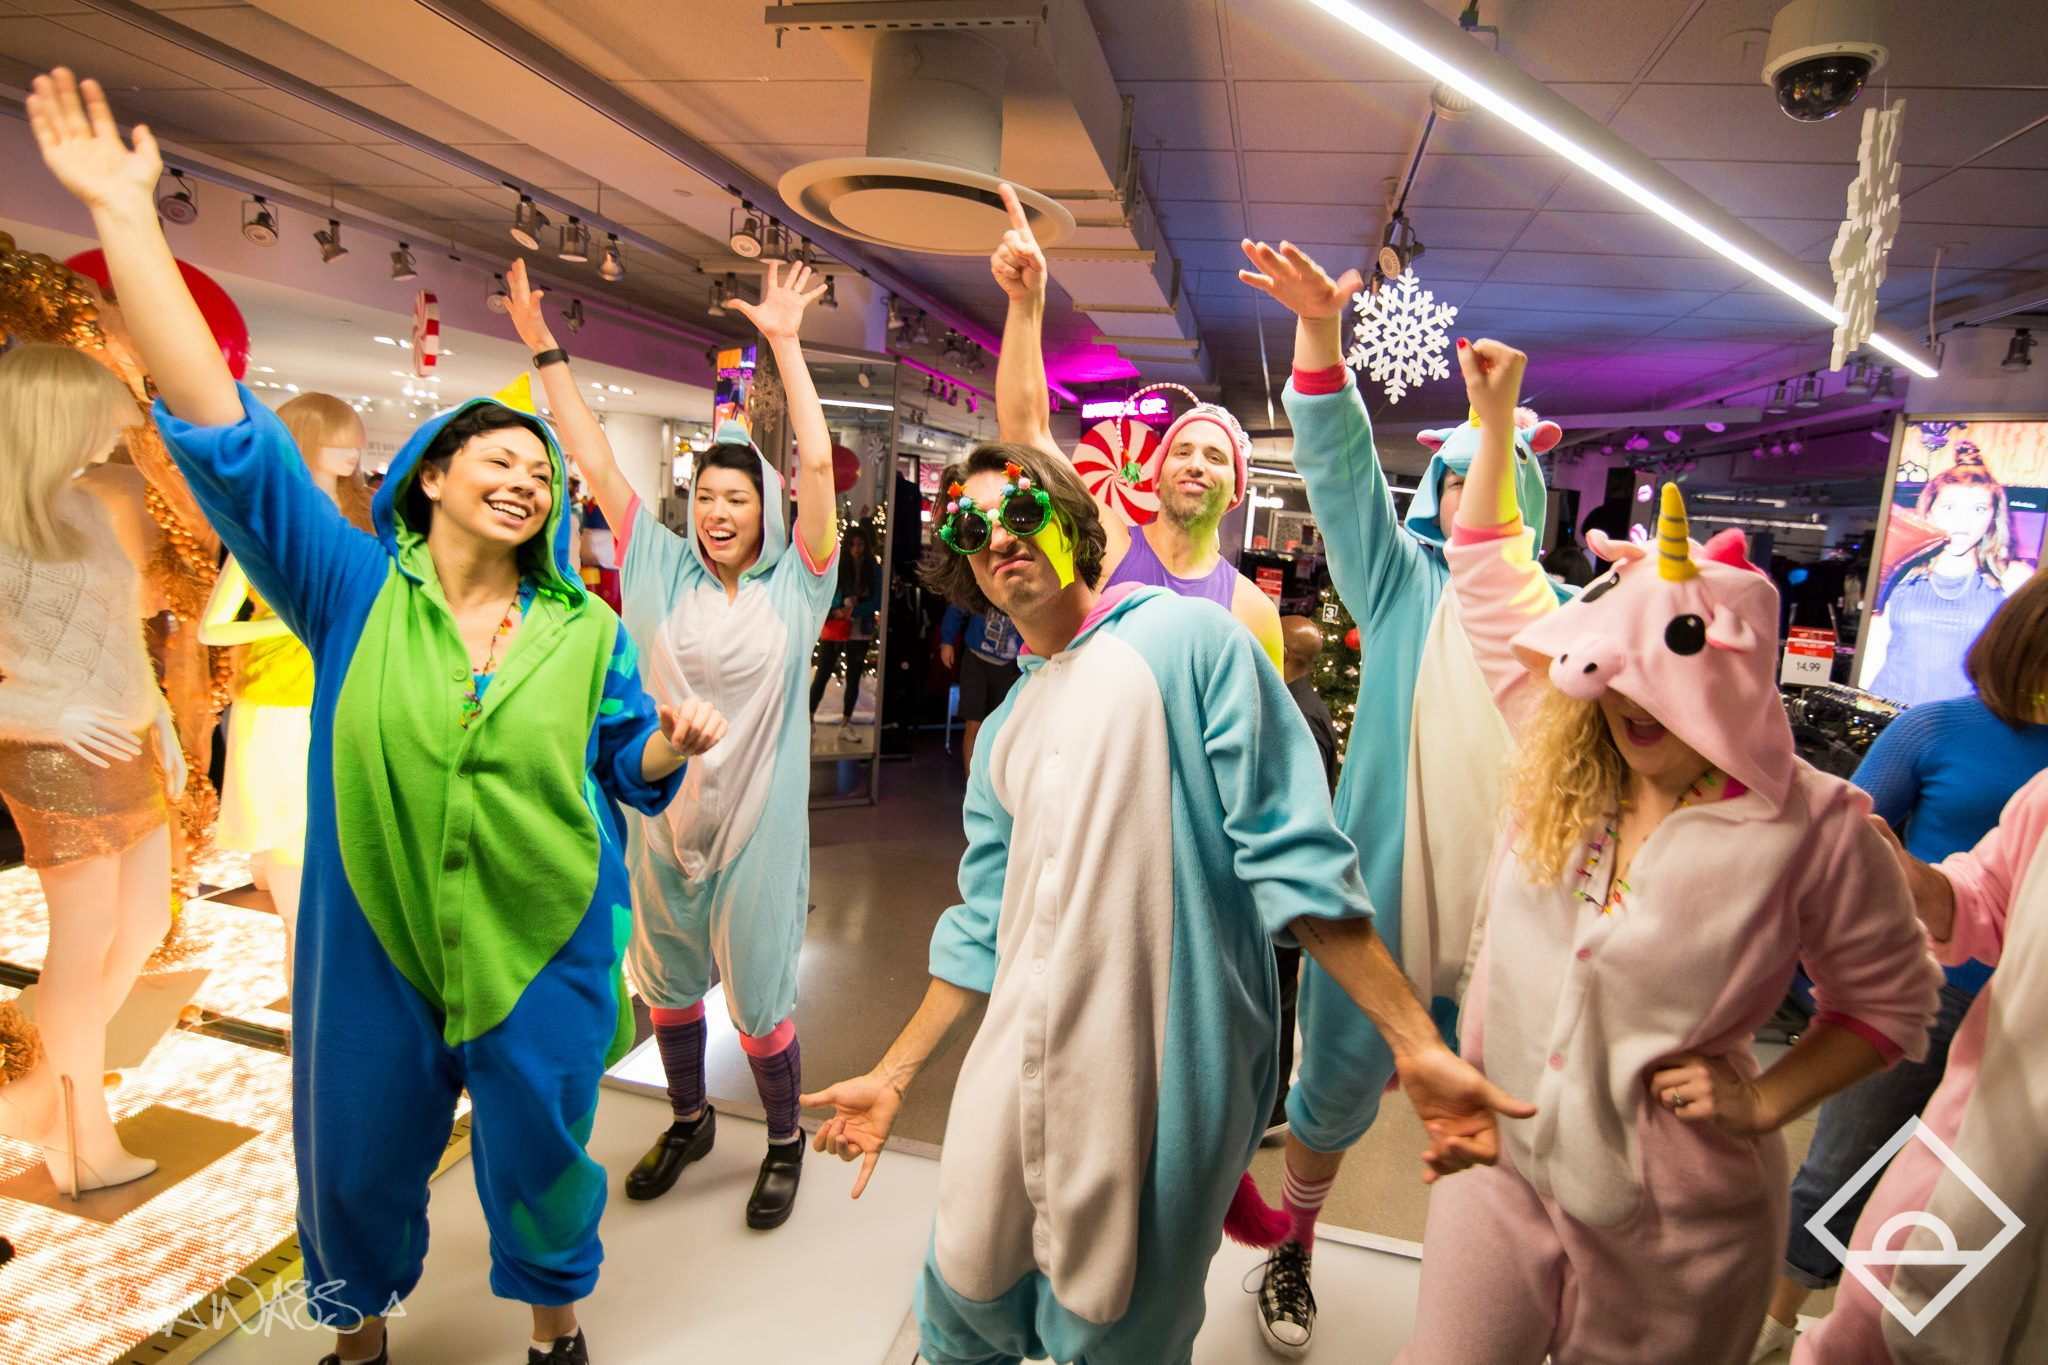 Attendees at Macy's first Daybreaker party in New York in December 2015 danced alongside the department store's mannequins and clothing racks.